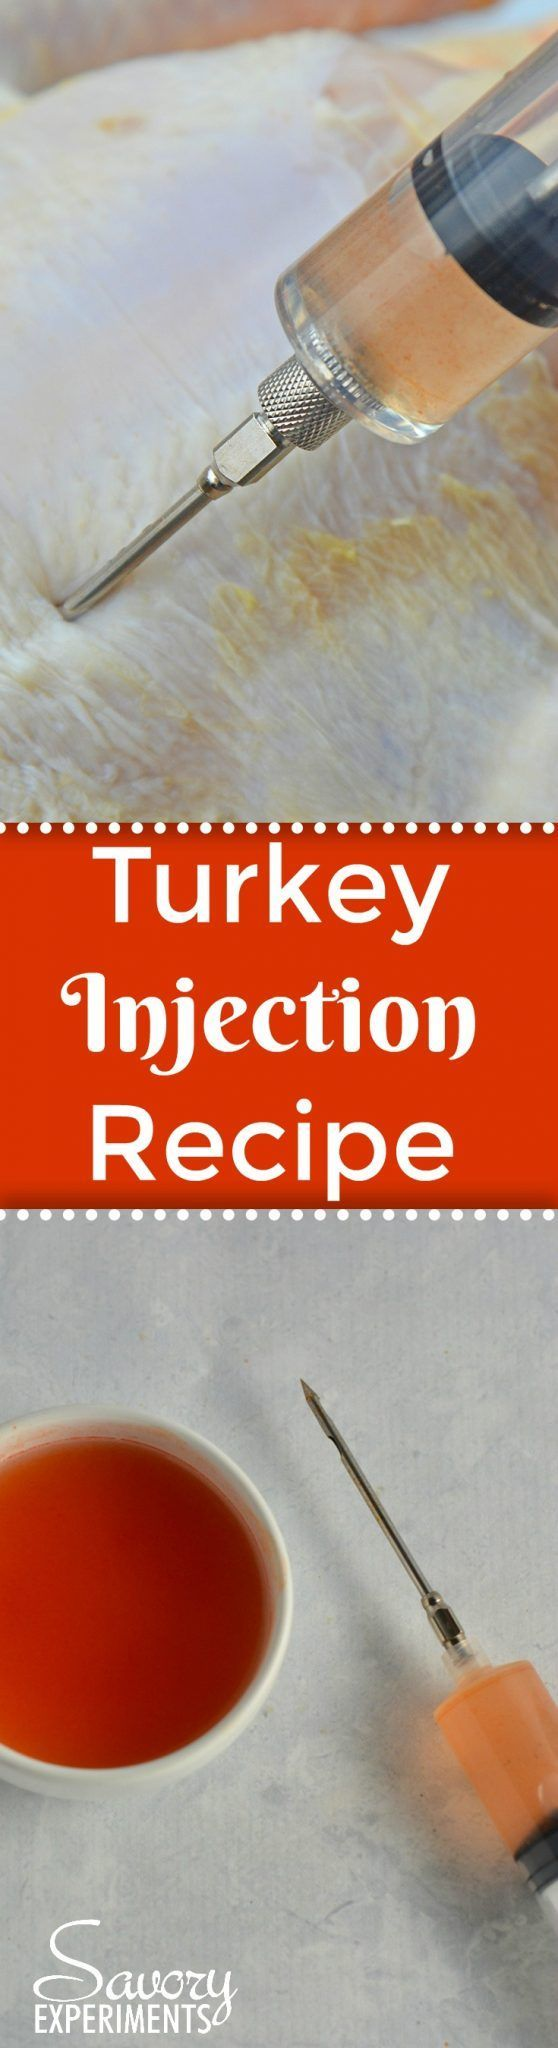 This Homemade Turkey Injection Recipe is super easy, taking only 5 minutes for a flavorful and slightly sweet bird just like the Cajun injector they sell at the store! #turkeyinjection #cajuninjector #turkeyrecipe www.savoryexperiments.com via @savorycooking